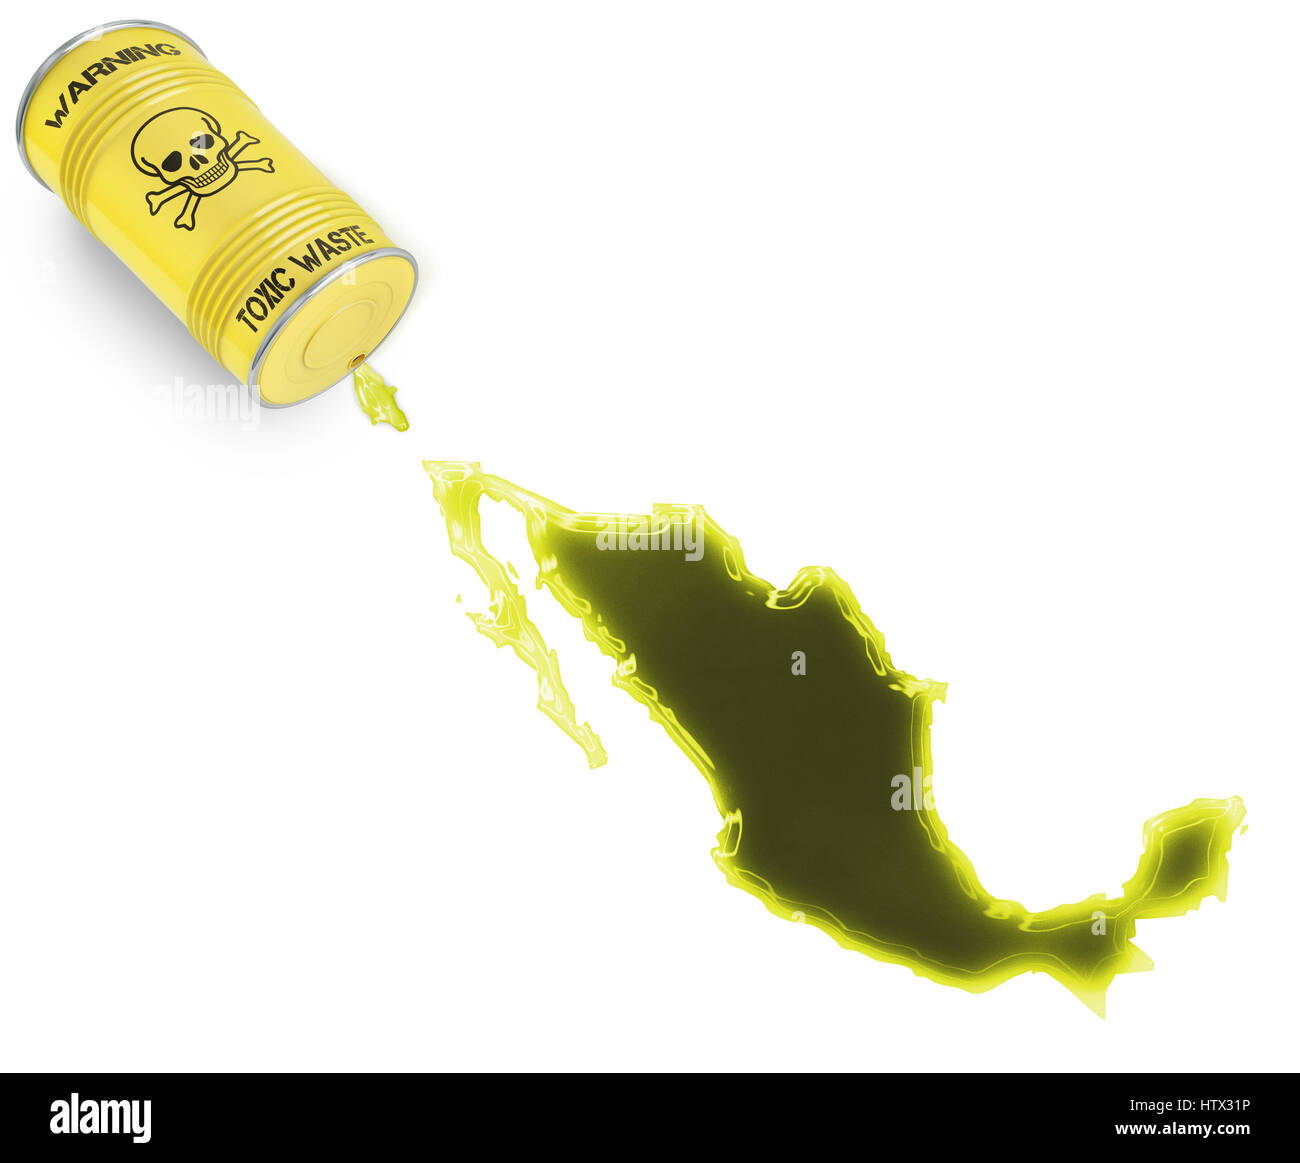 Glossy spill of a toxic substance in the shape of Mexico (series) - Stock Image